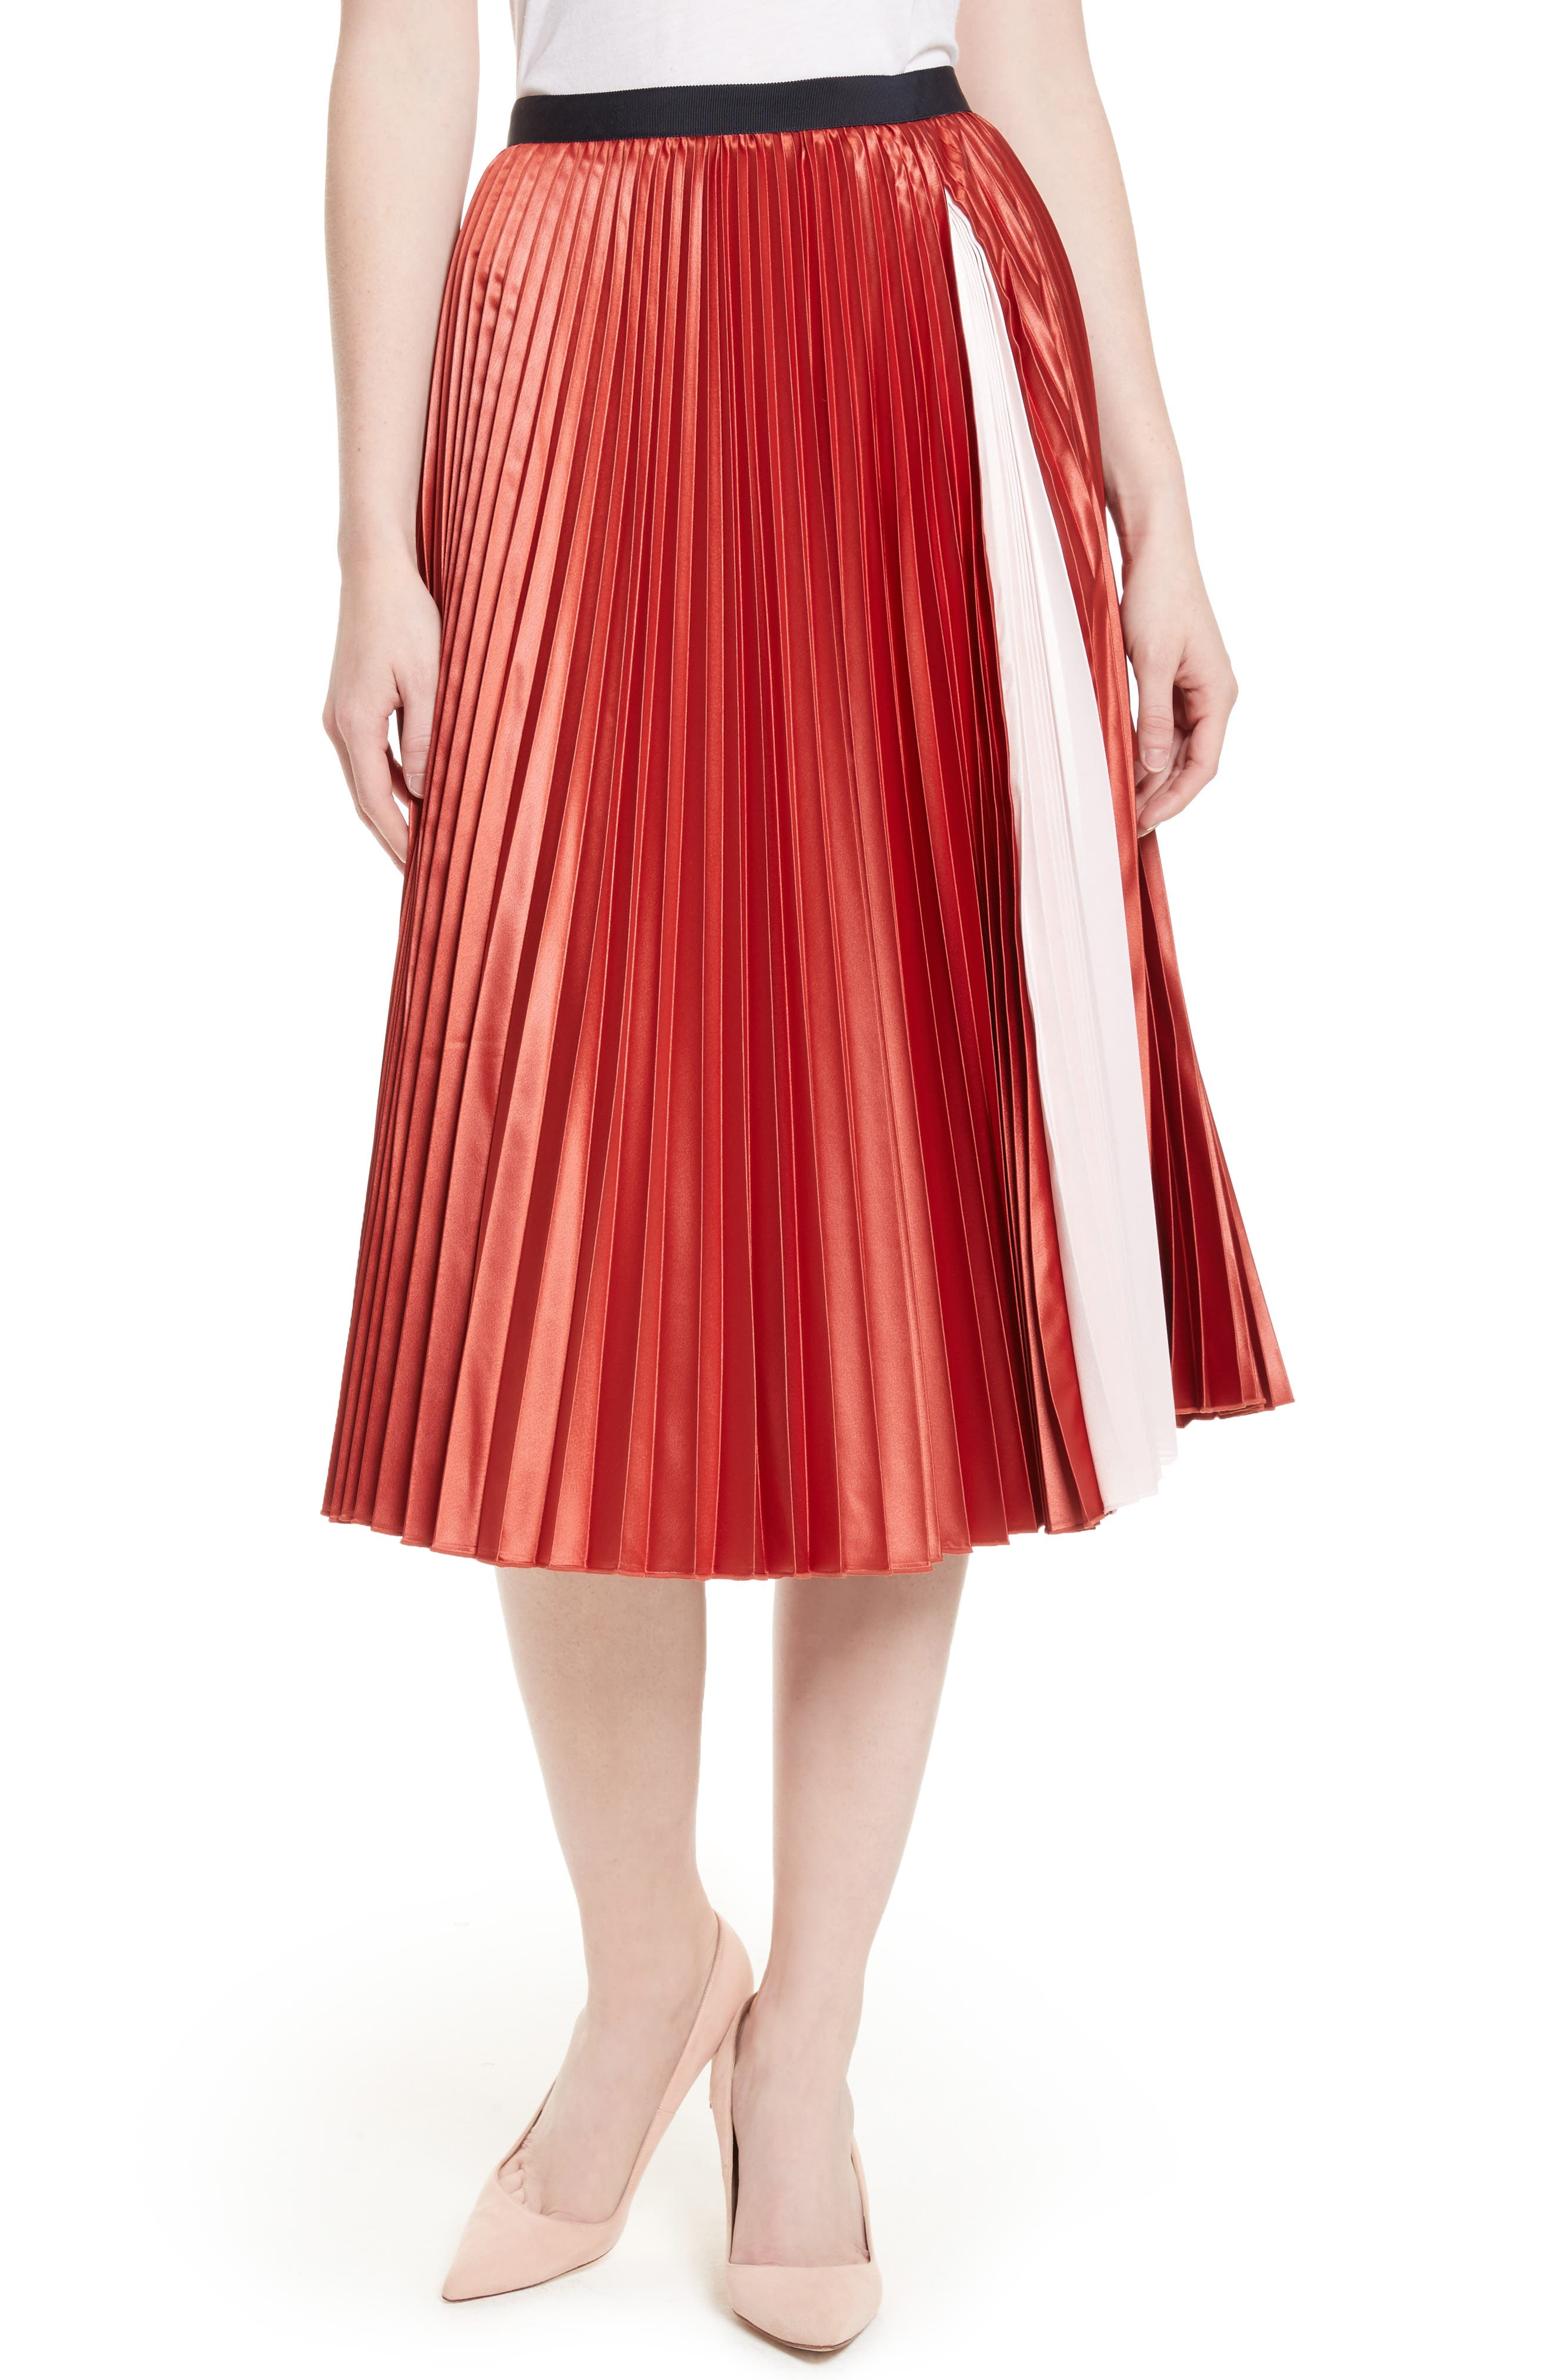 Alternate Image 1 Selected - Ted Baker London Osla Colorblock Pleated Midi Skirt